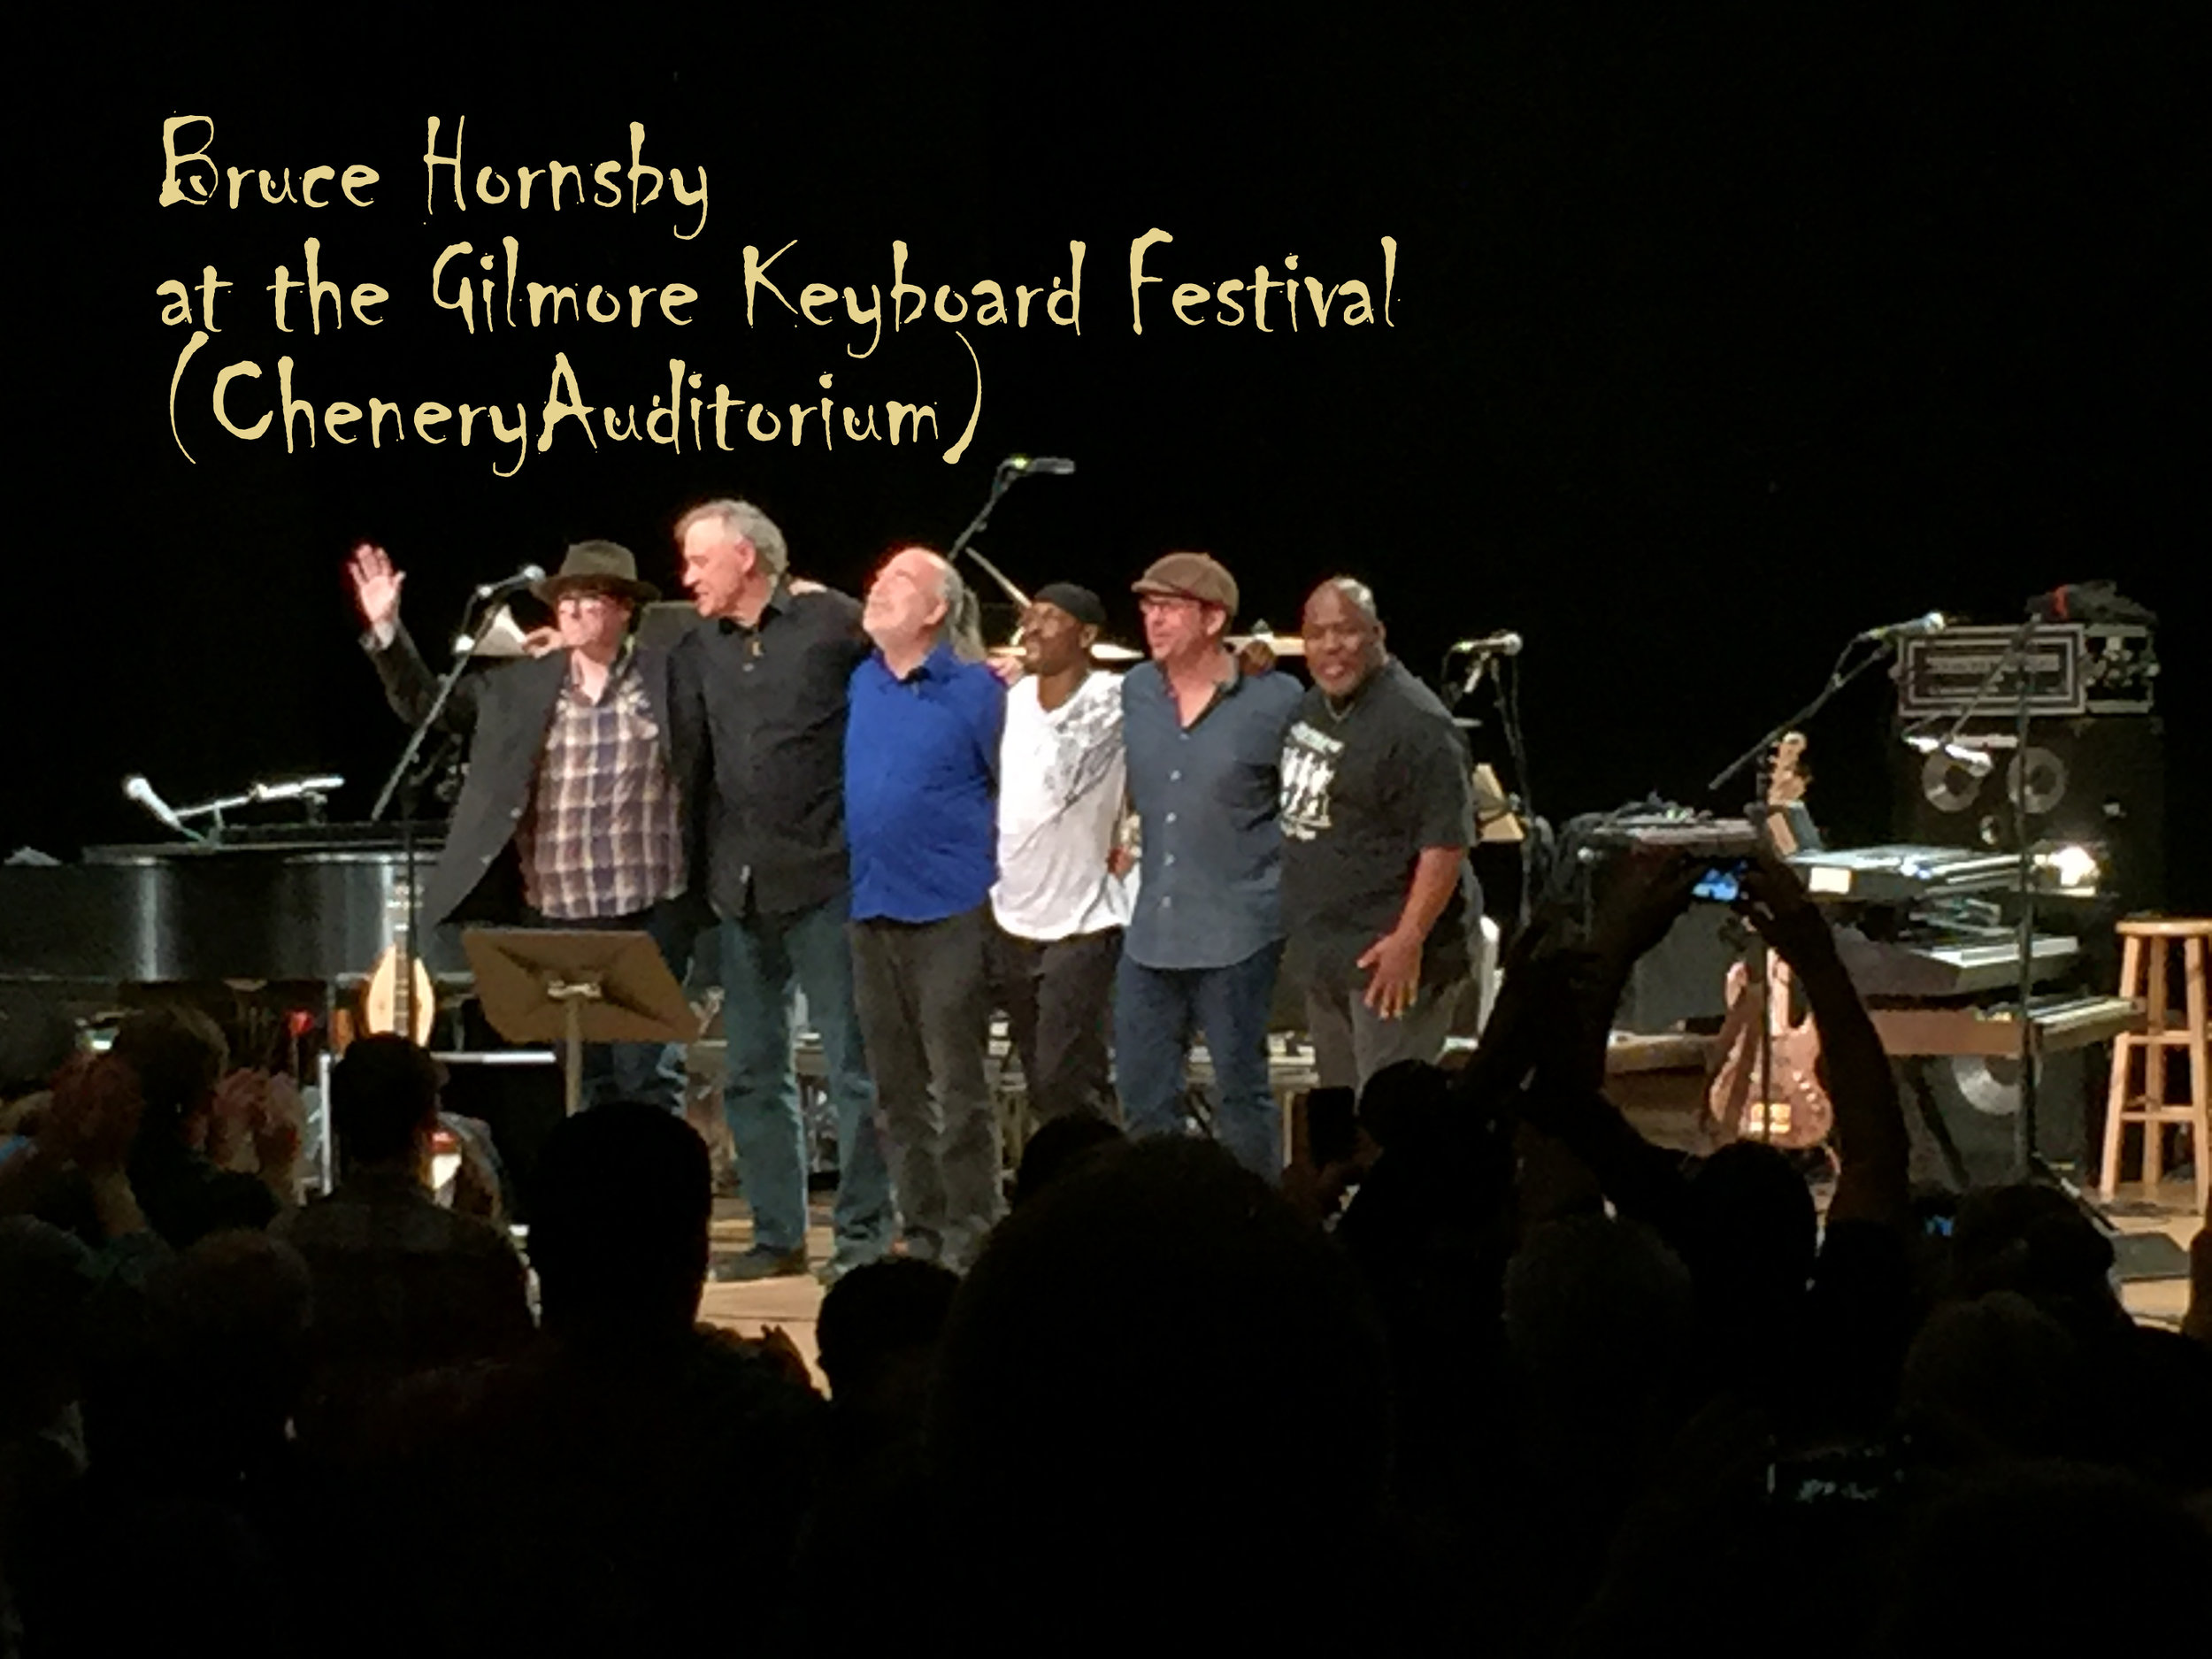 Bruce Hornsby (Steve's fav) performs for the biennial gilmore keyboard festival at chenery audiotorium (5 min walk)